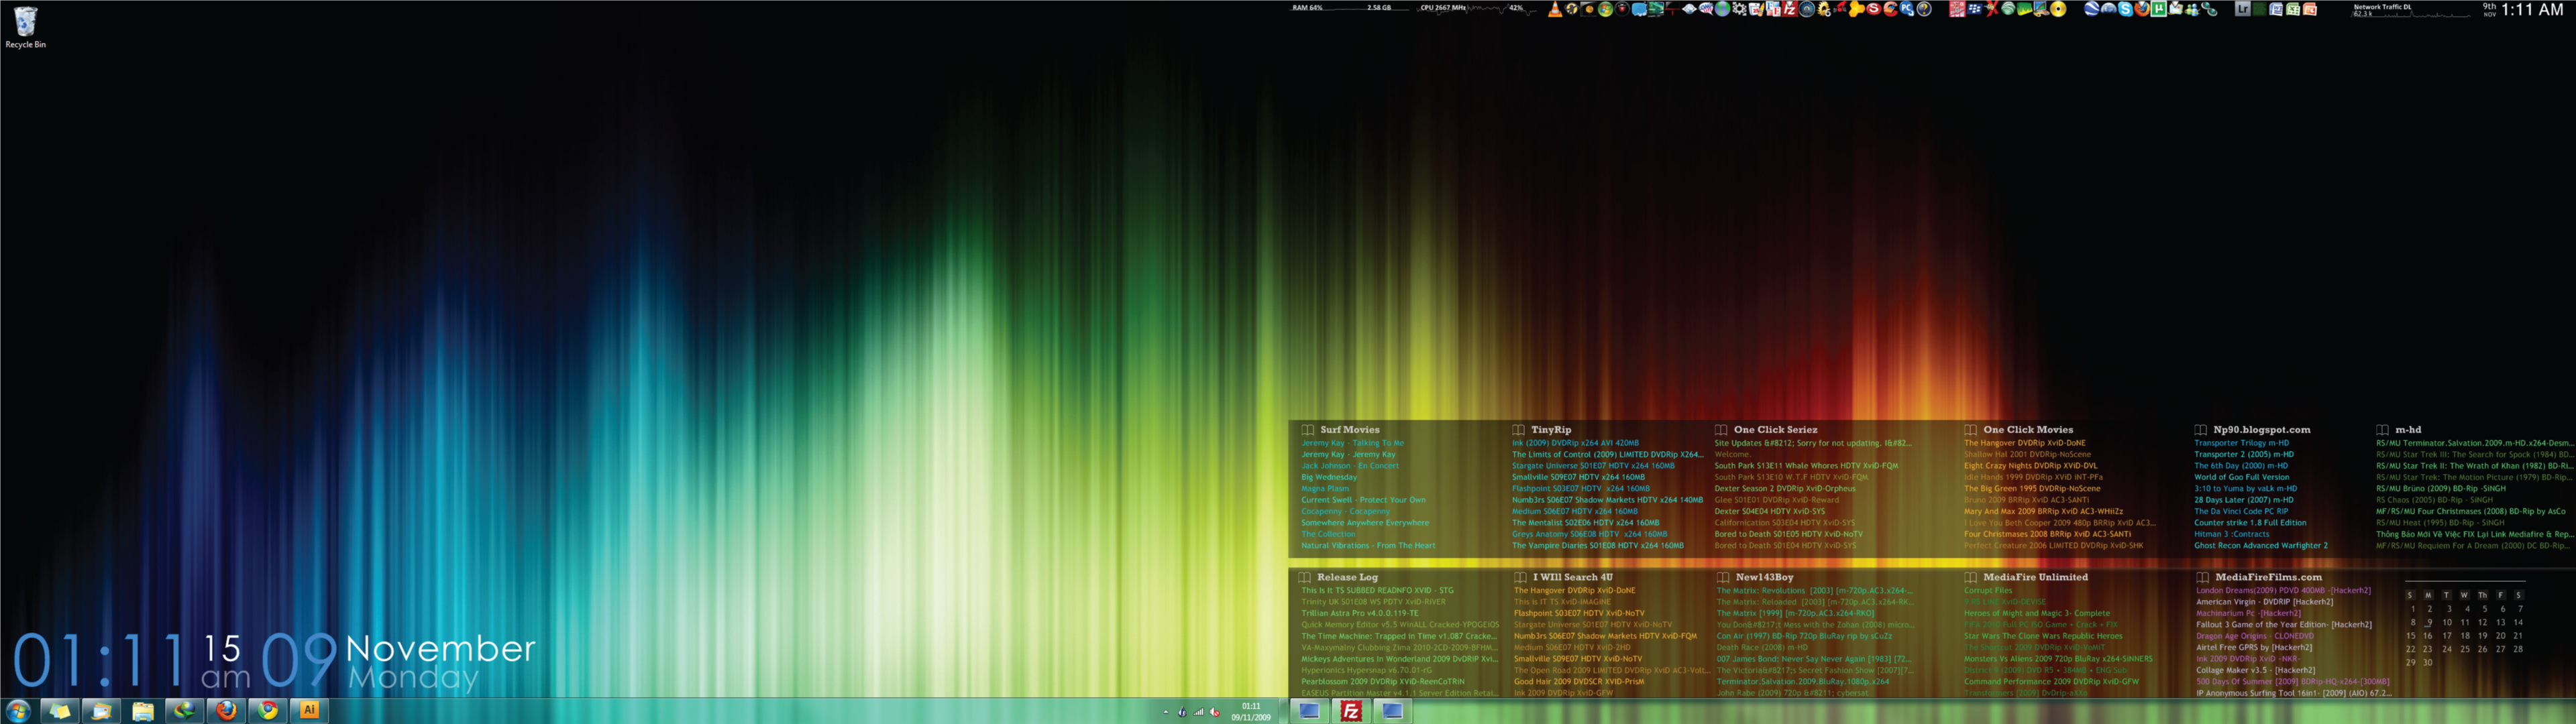 Dual Screen Desktop Windows 7 By Bengatley On Deviantart